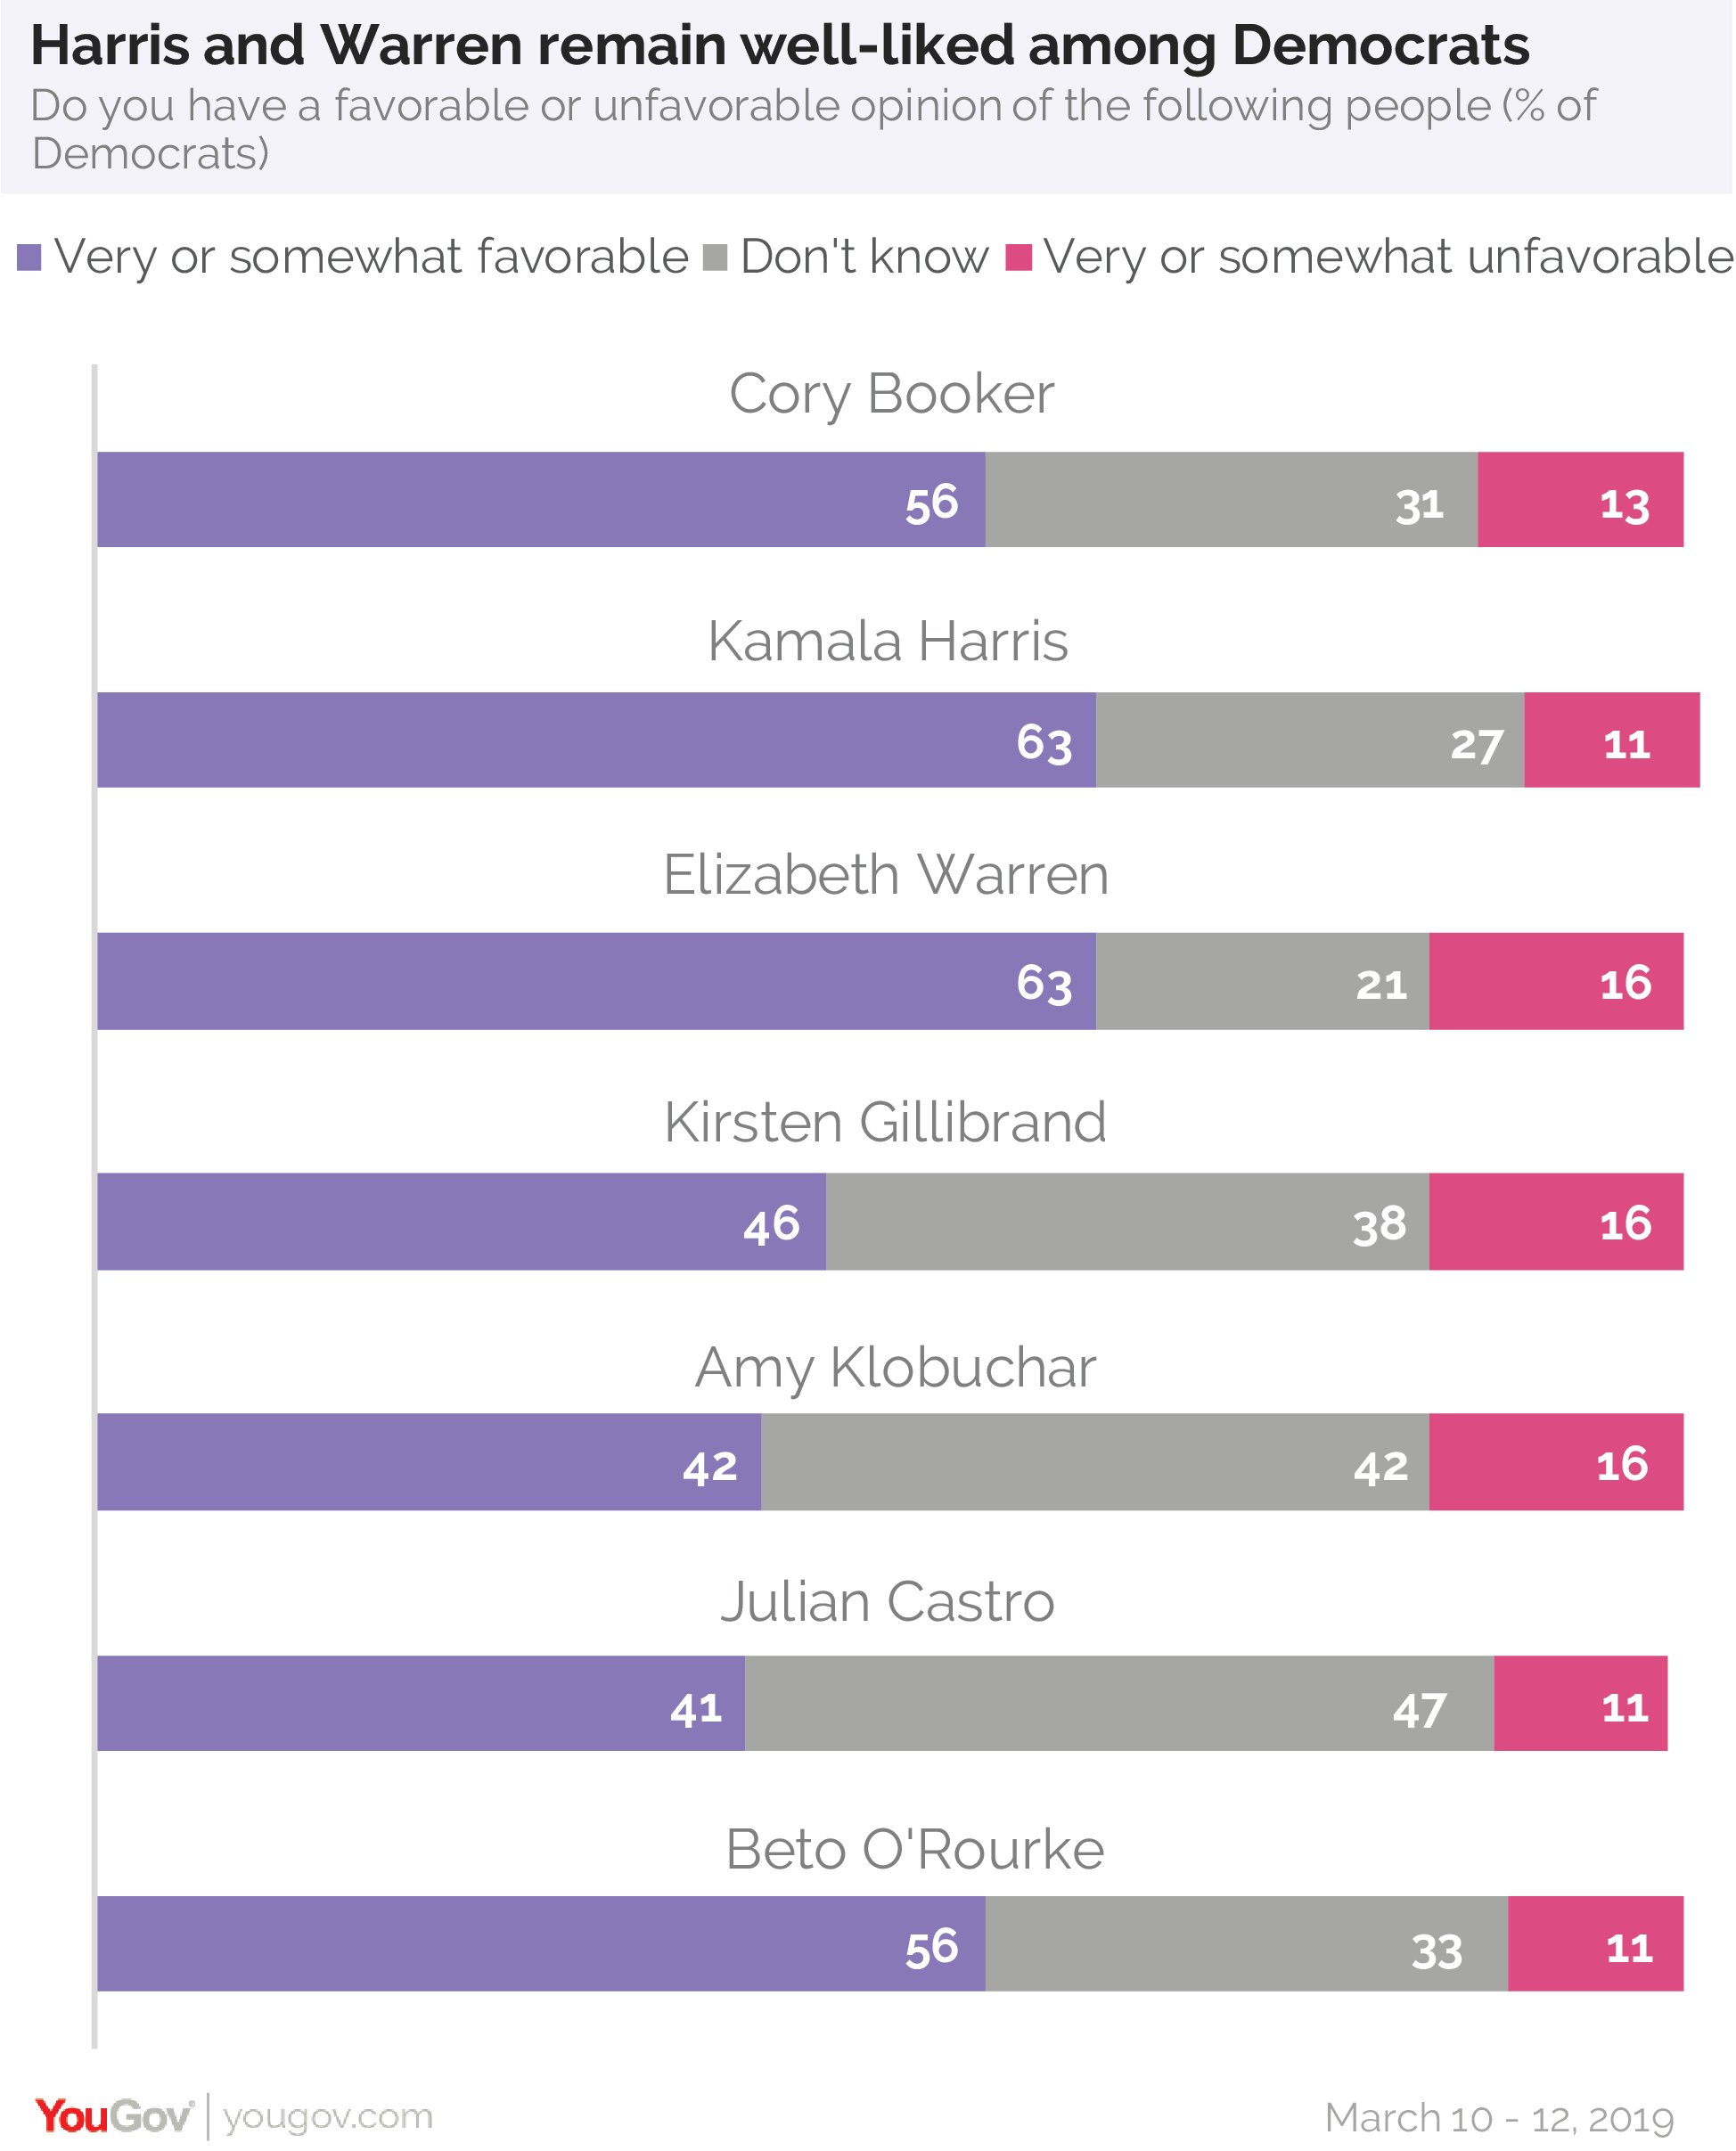 Kamala Harris and Elizabeth Warren remain well-liked among Democrats